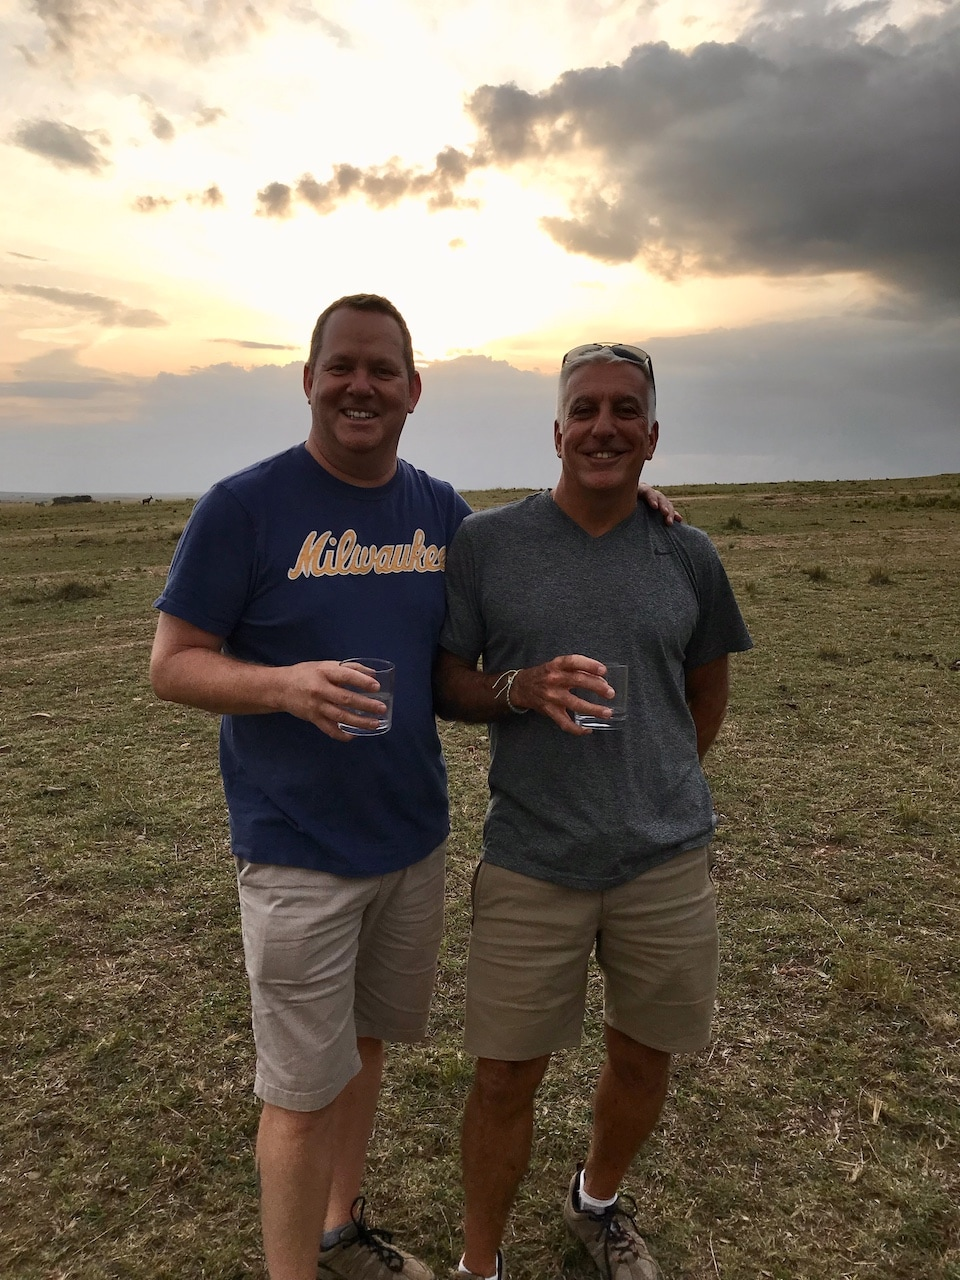 Two gay men on vacation in Kenya.